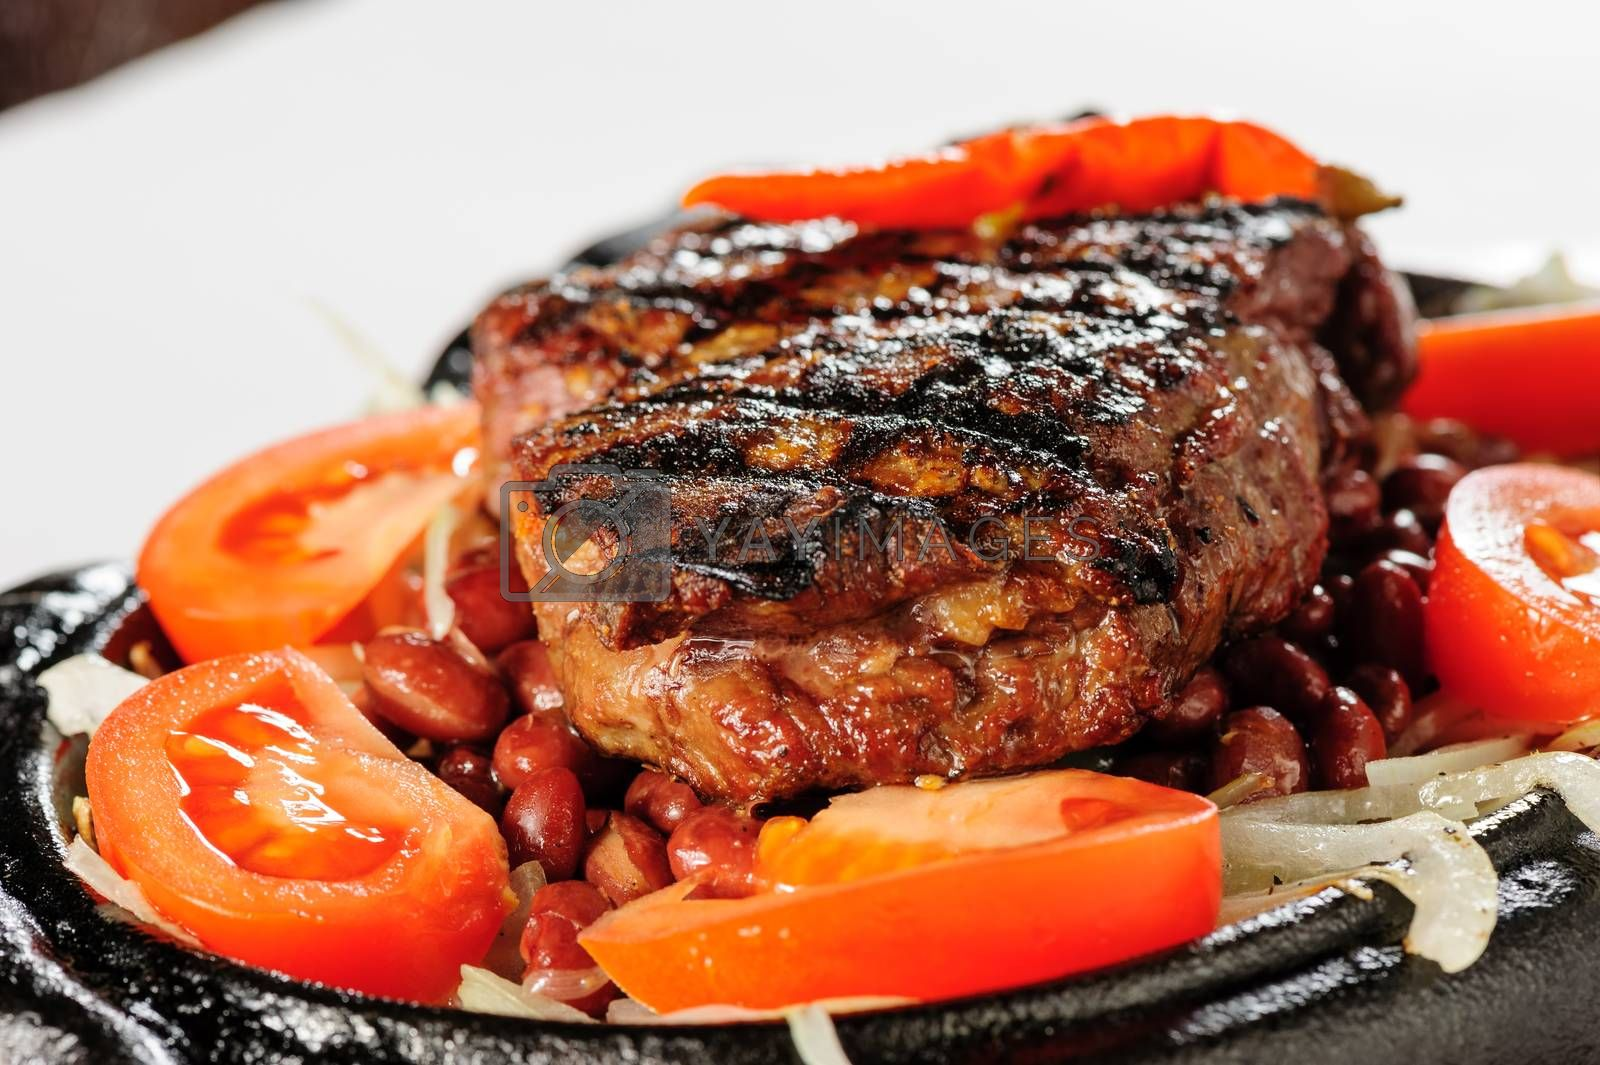 Juicy beef steak with red beans garnish and sliced tomato